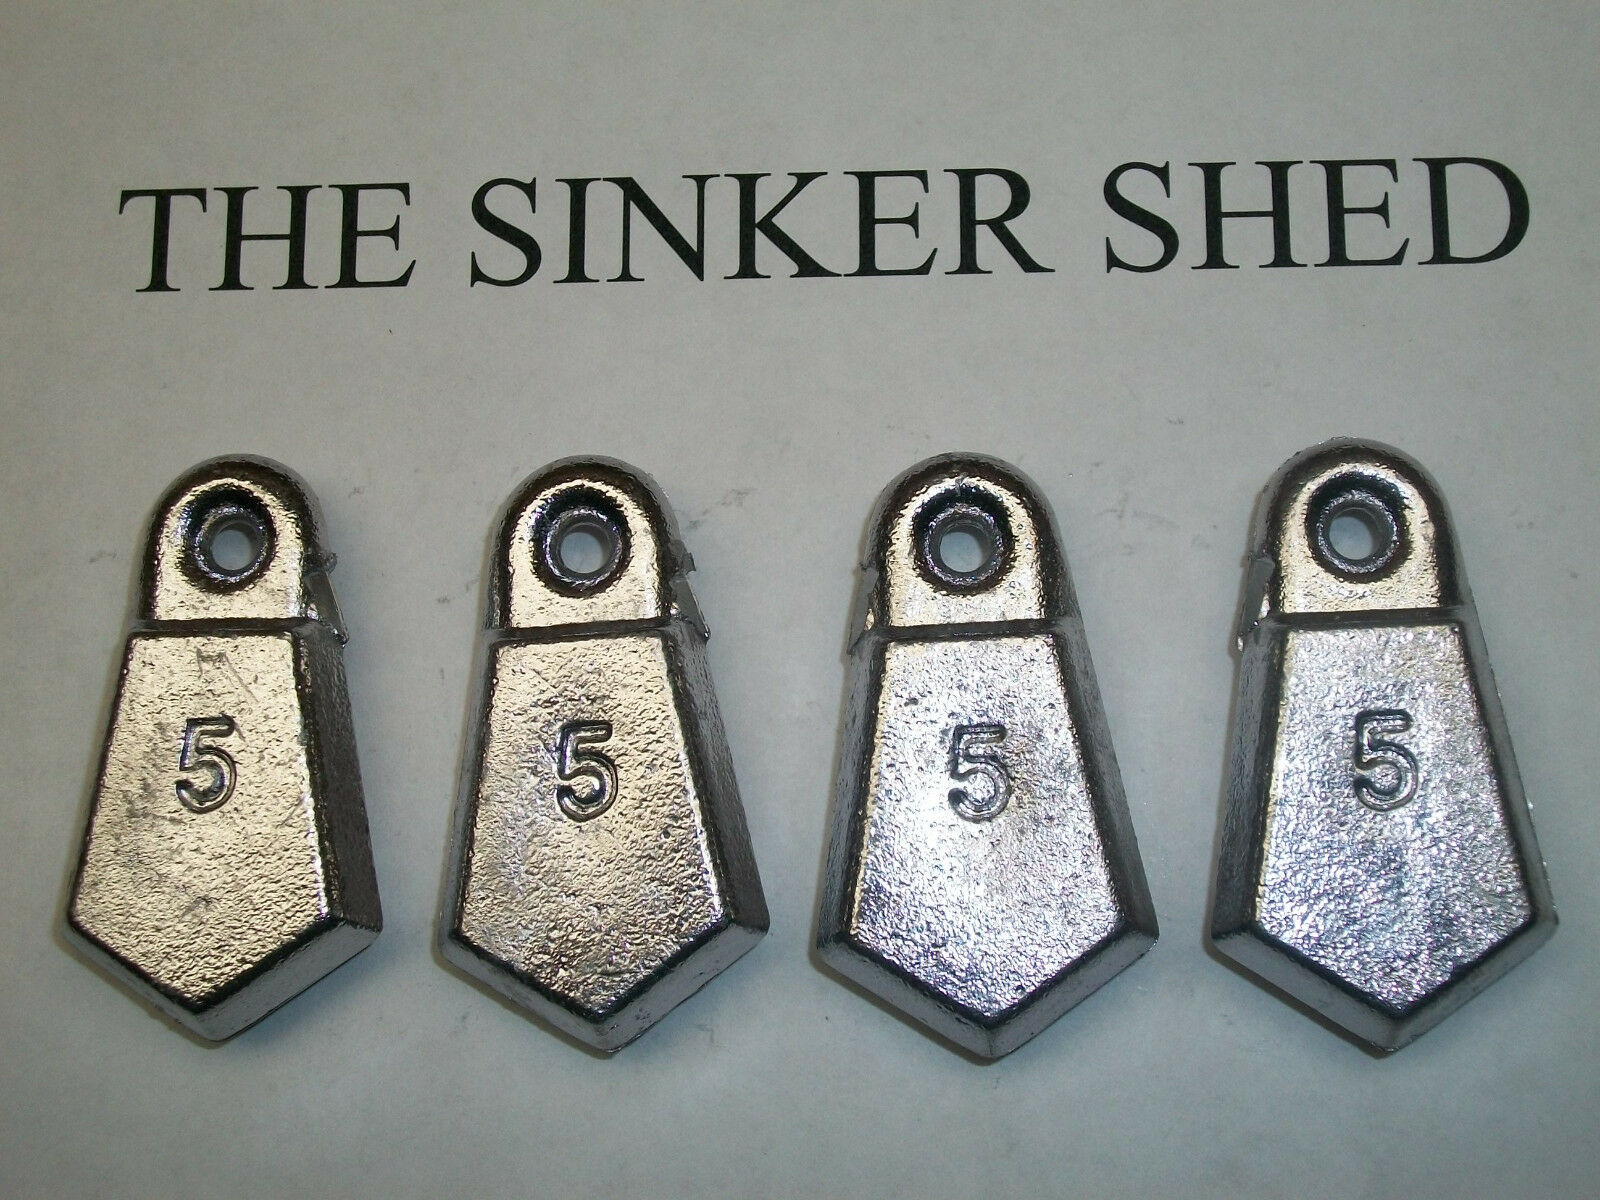 5 oz flat bank sinkers / decoy weight weight decoy - quantity of 10/25/50 - FREE SHIPPING 4ffaf3